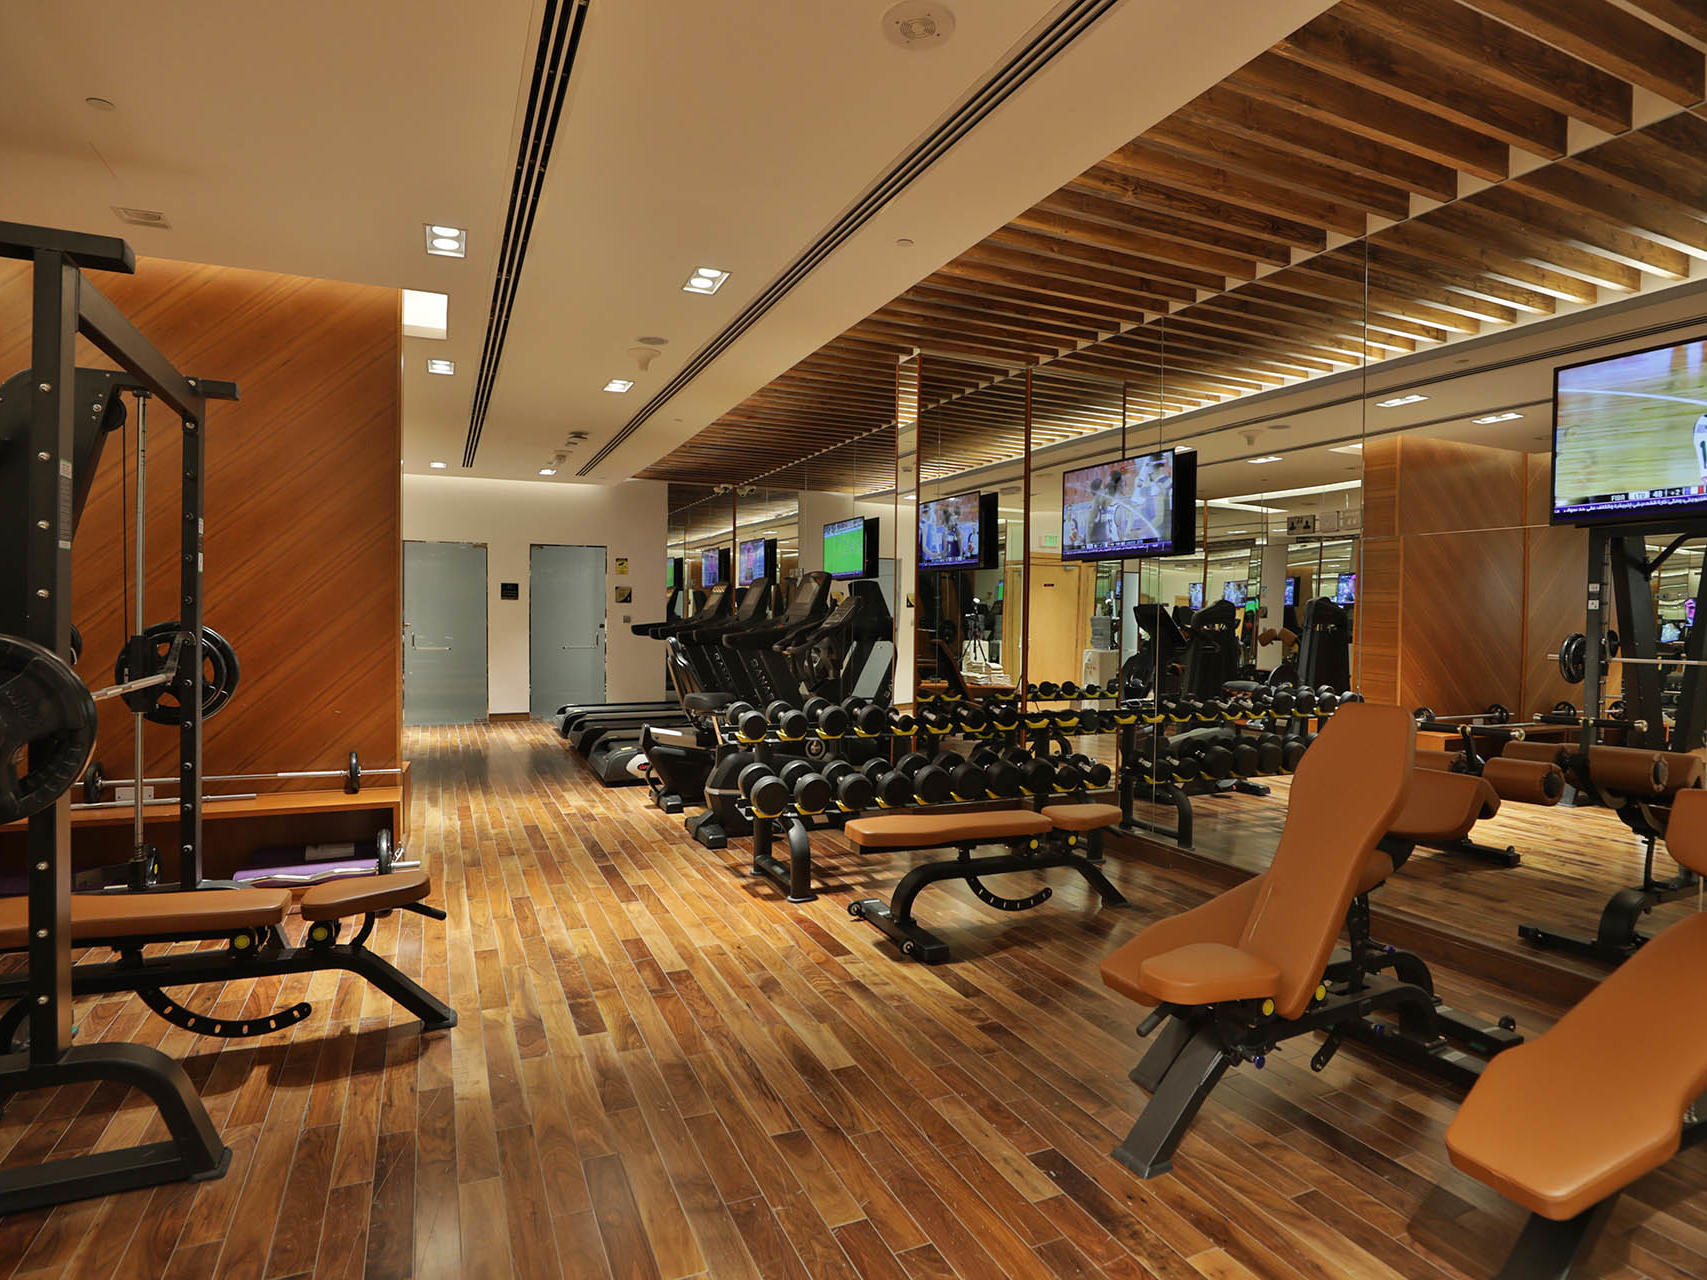 Fitness center at VIP Hotel in Doha